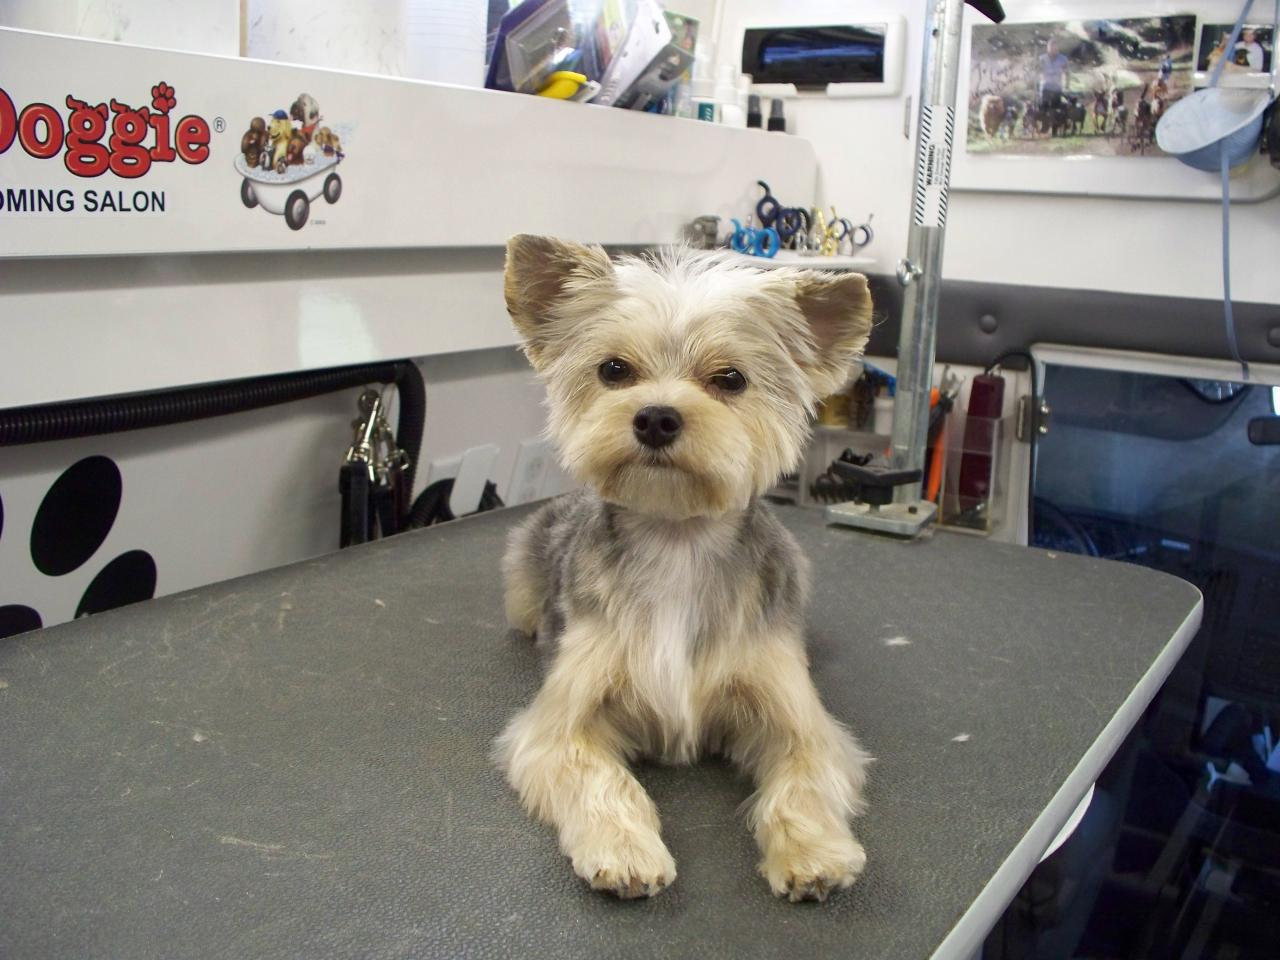 Dark After Photo Gallery Yorkie Maltese Mix Hypoallergenic Yorkie Maltese Mix Sale Los Angeles Morkie After Club Doggie Mobile Grooming Salon Before bark post Yorkie Maltese Mix